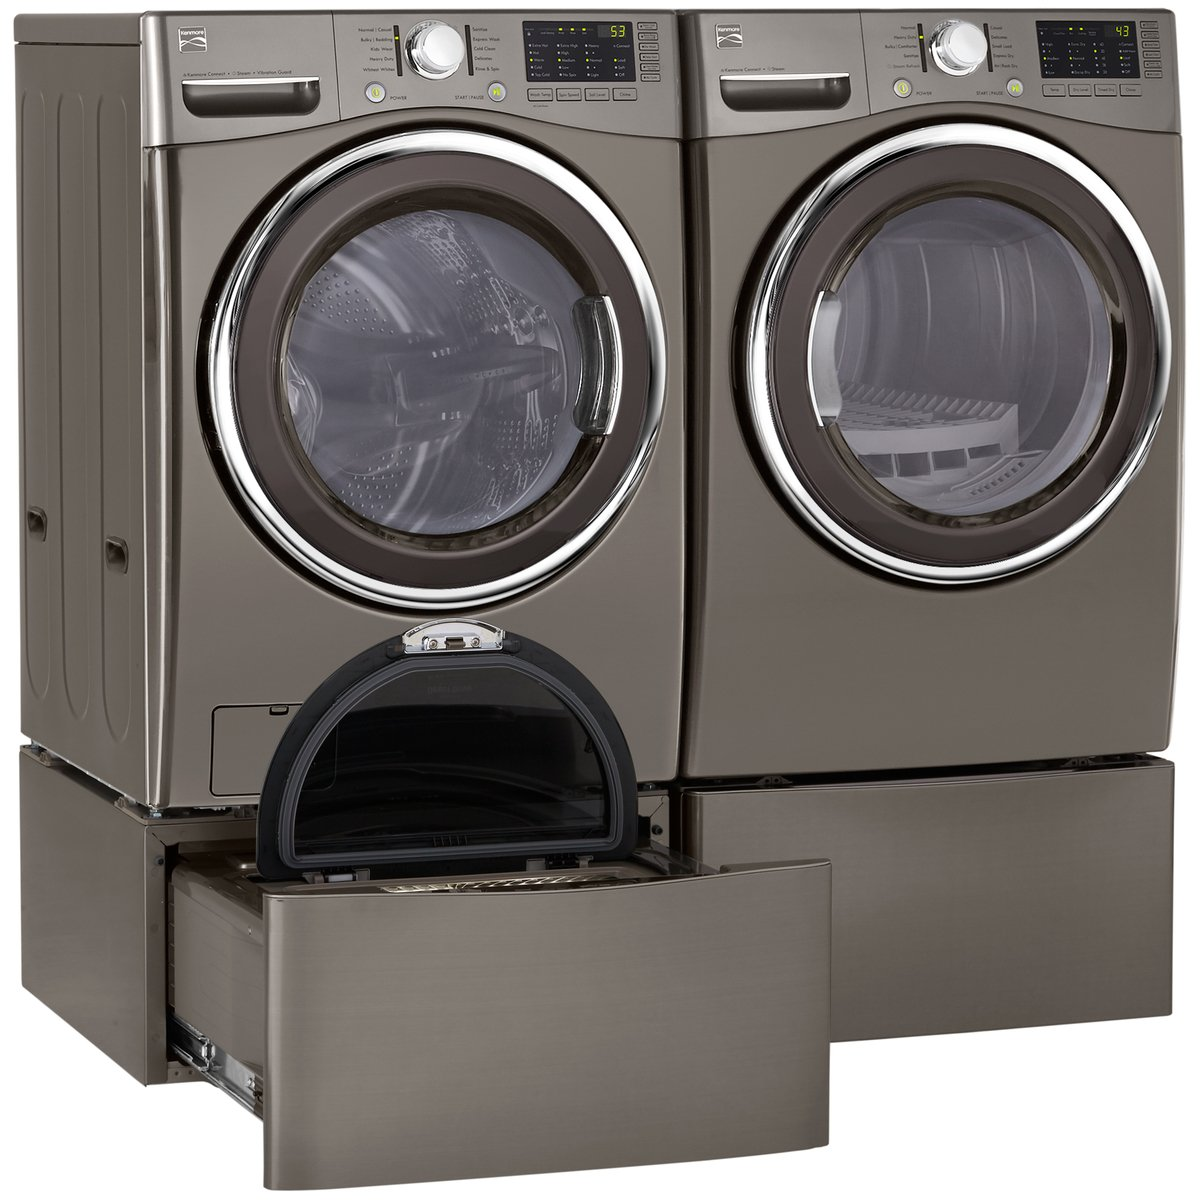 Hooking up washer dryer combo